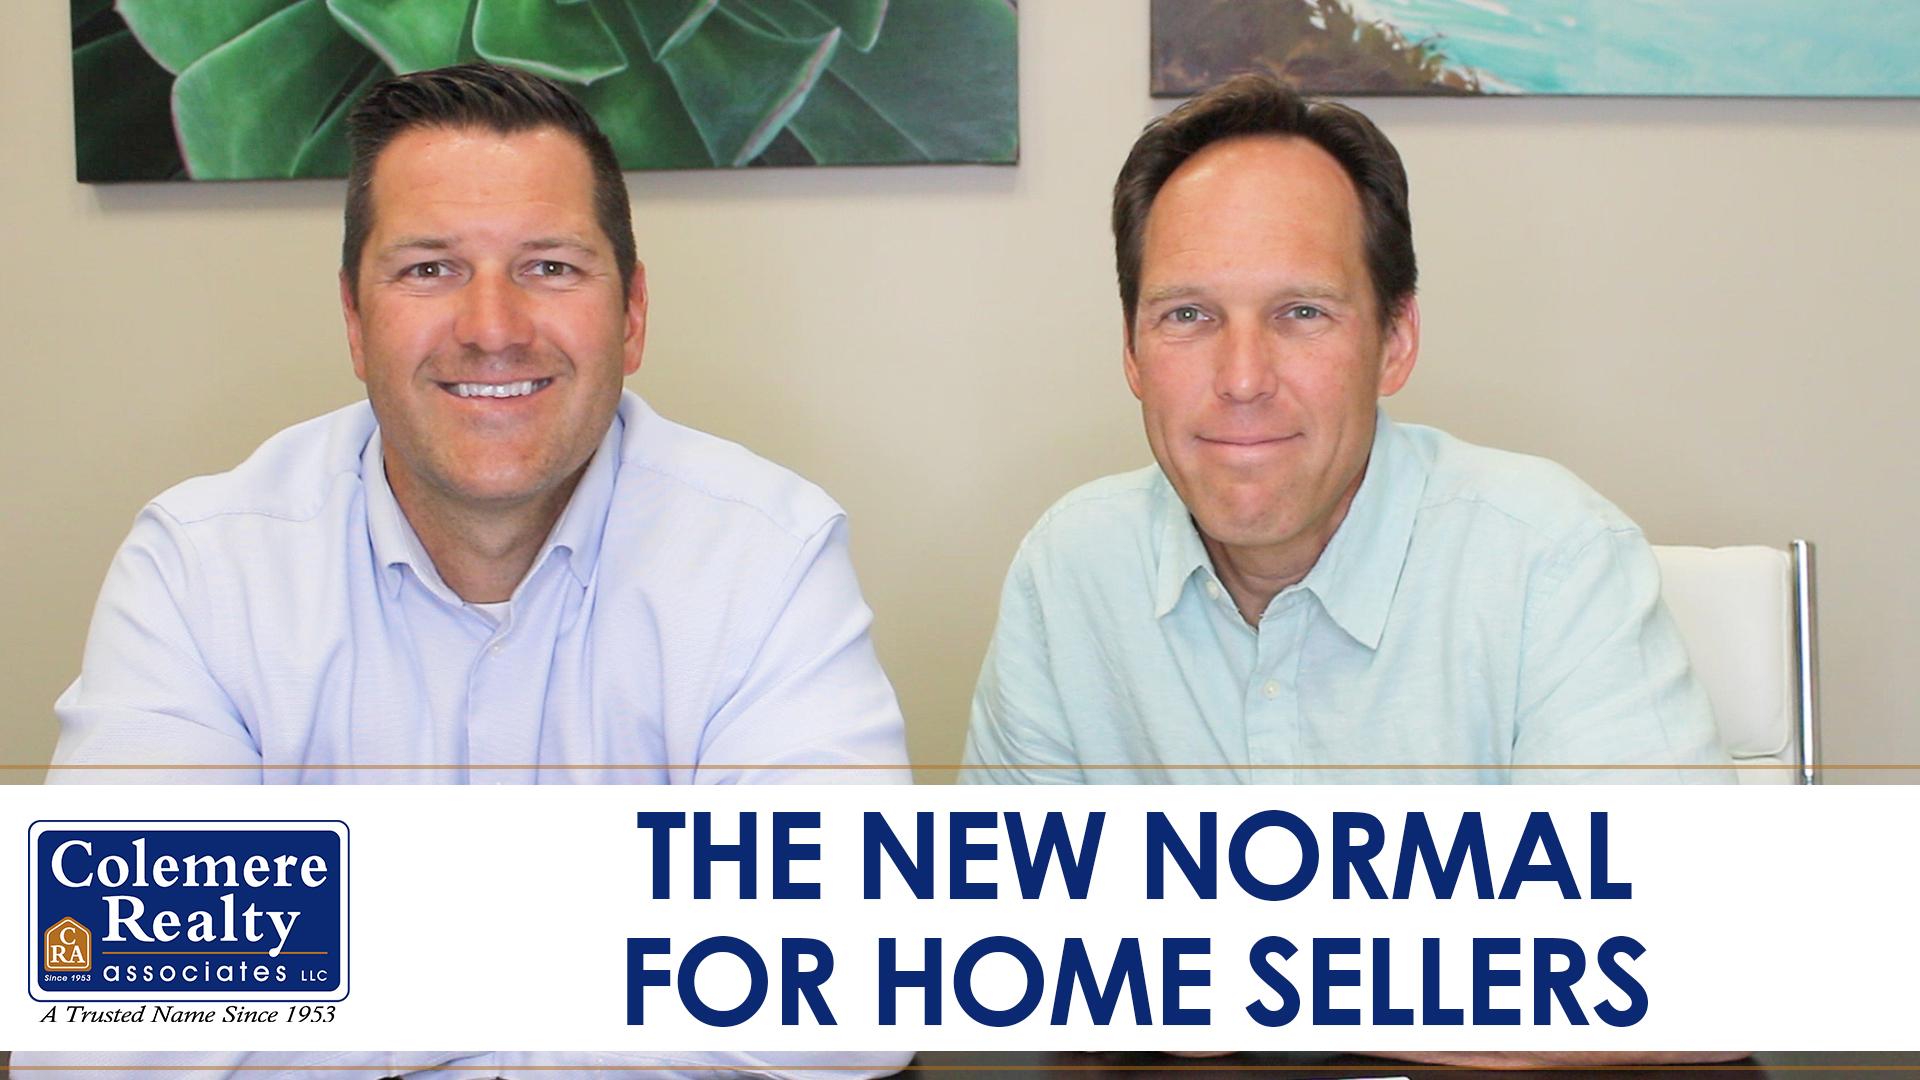 What Can Sellers Expect in the New Normal?